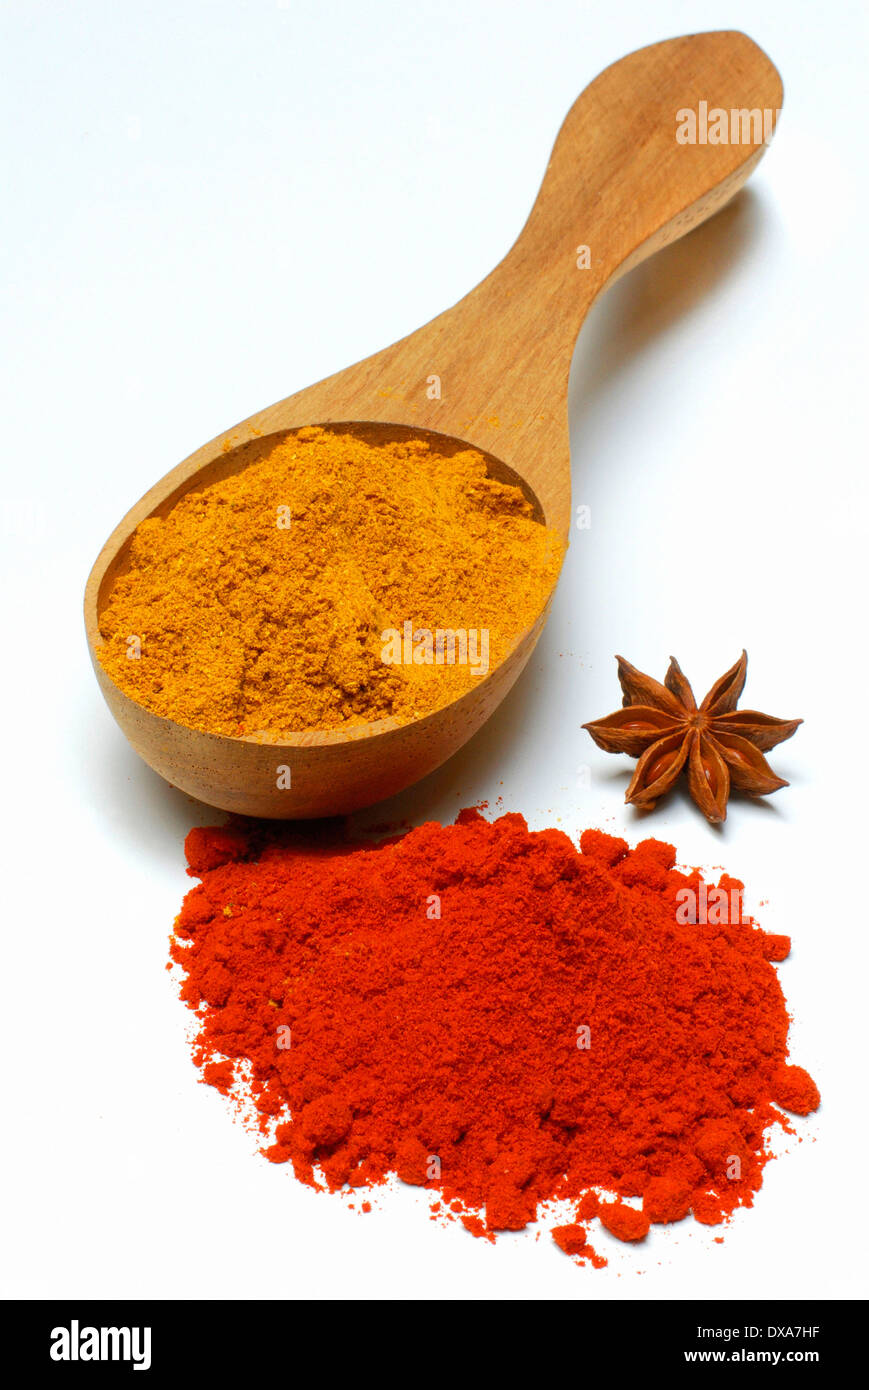 Curry, Paprika, Star Anise - Stock Image